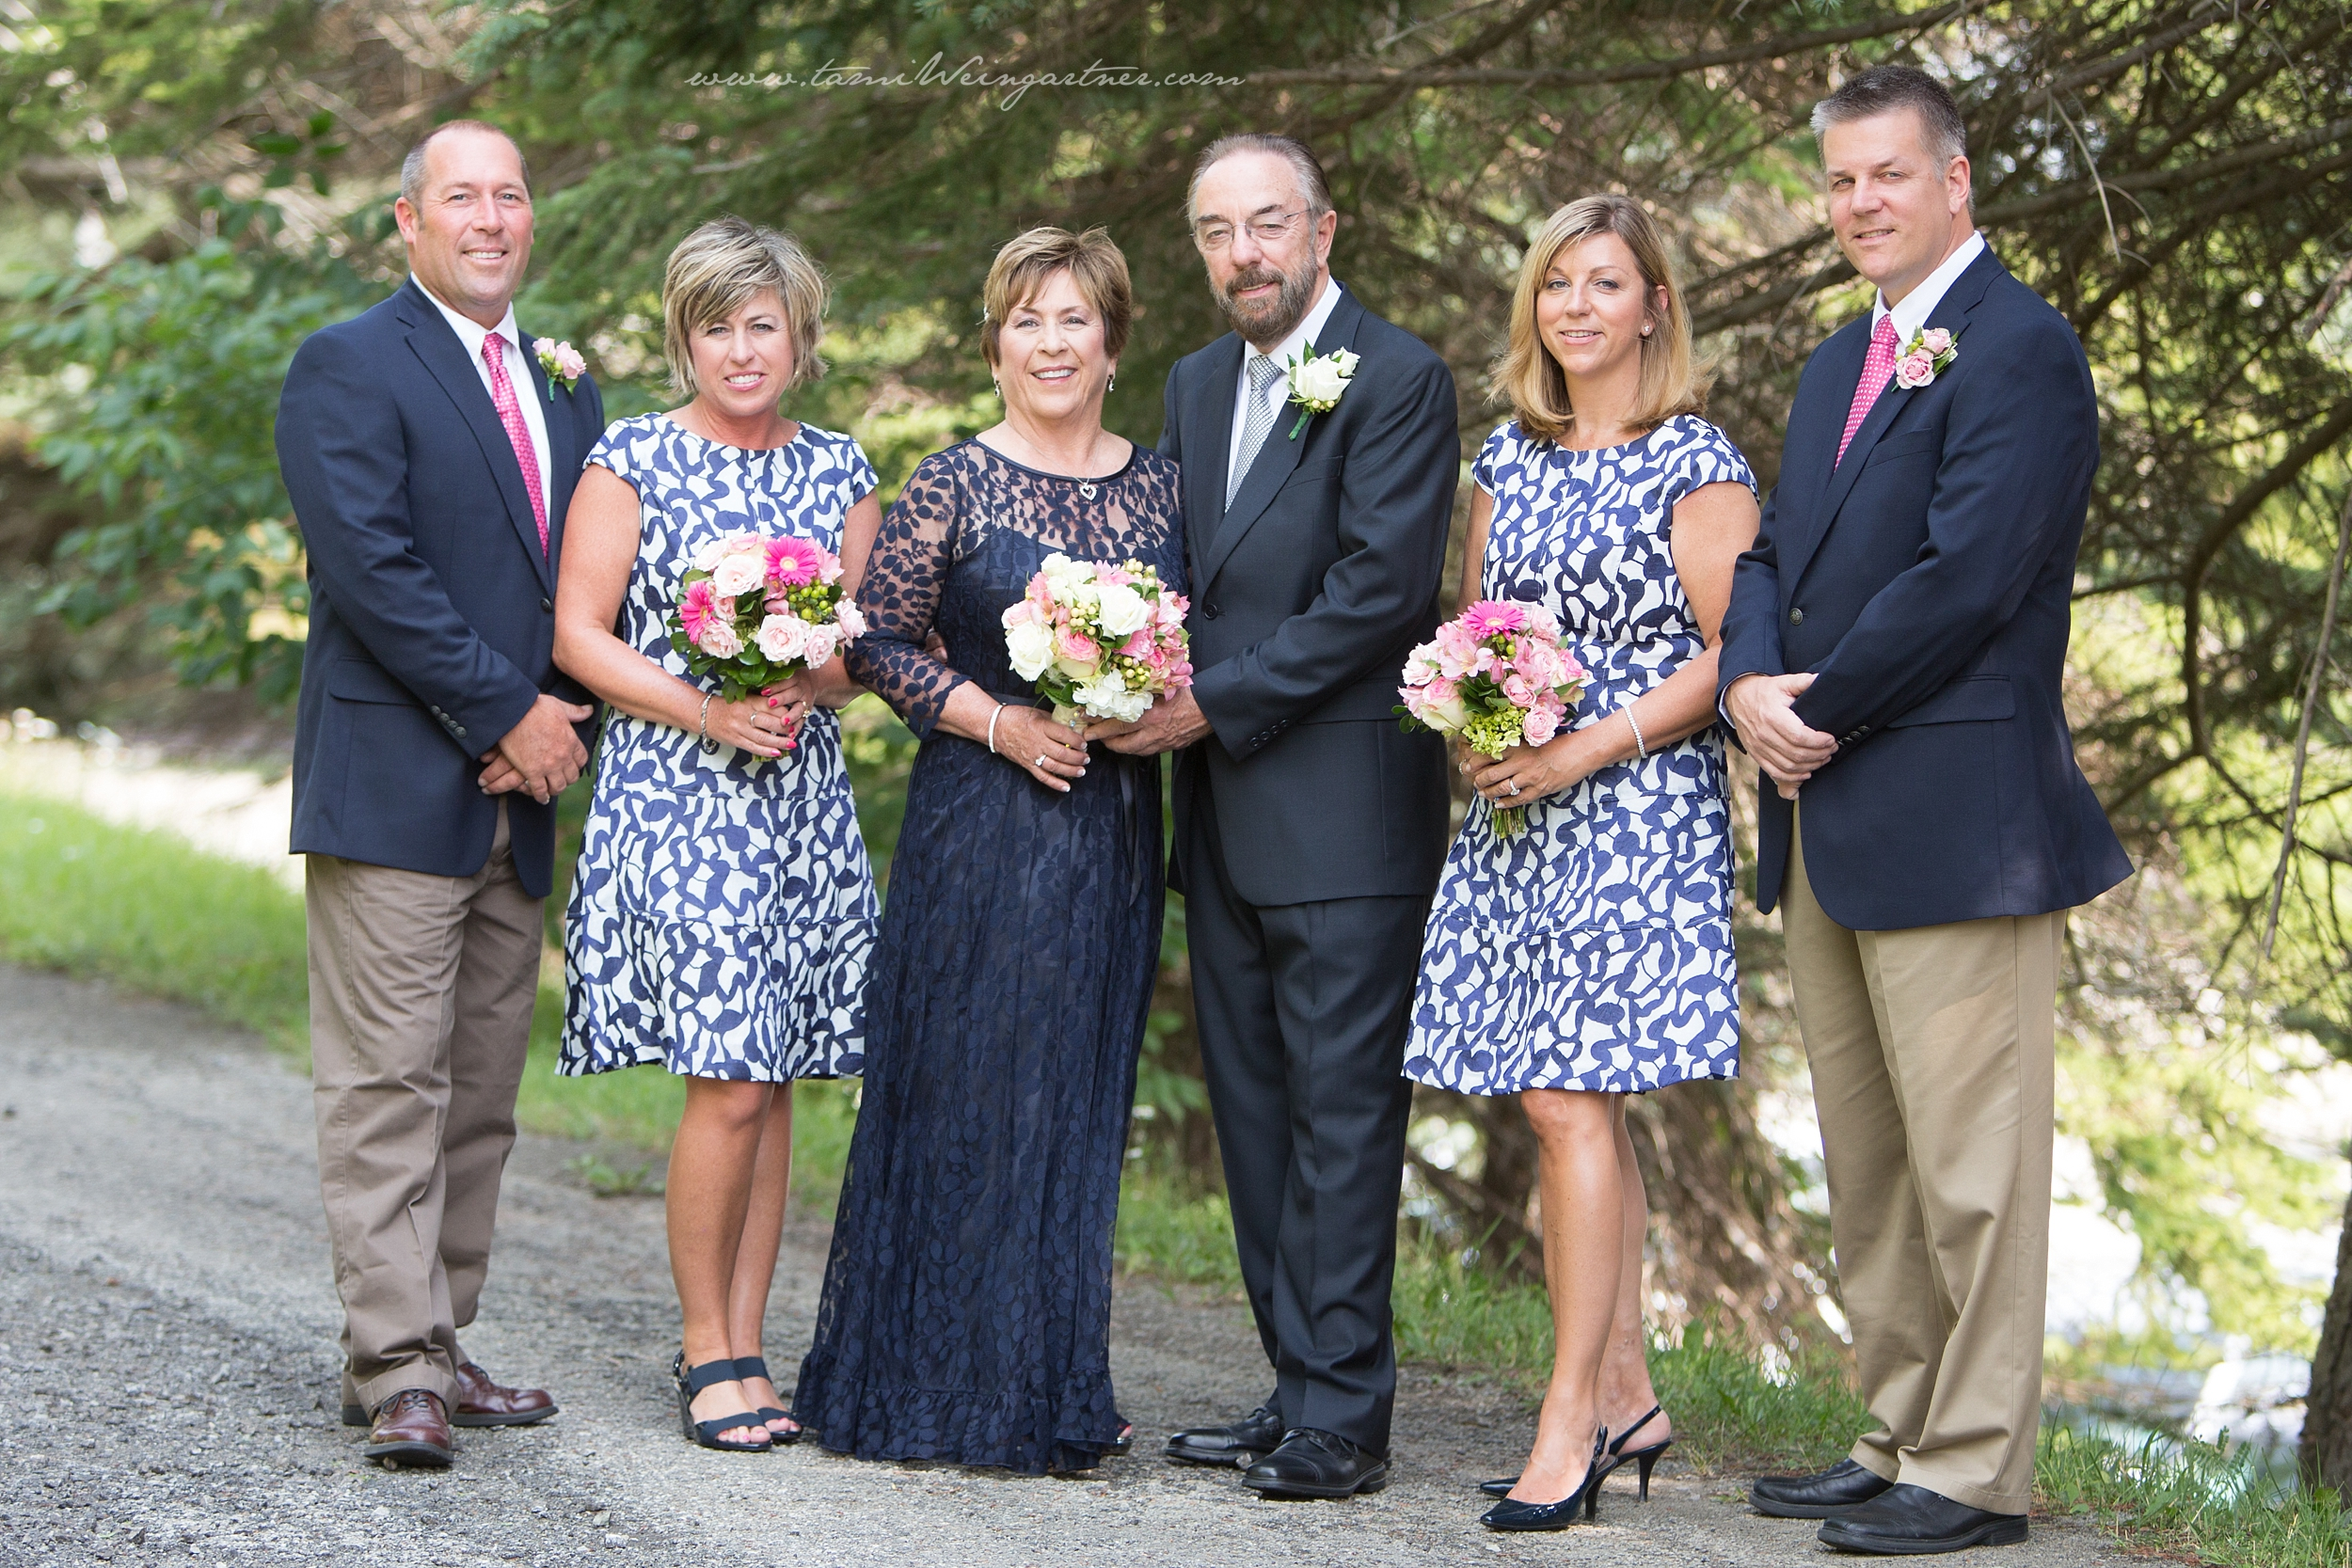 Elegant 2nd wedding with navy blue dress